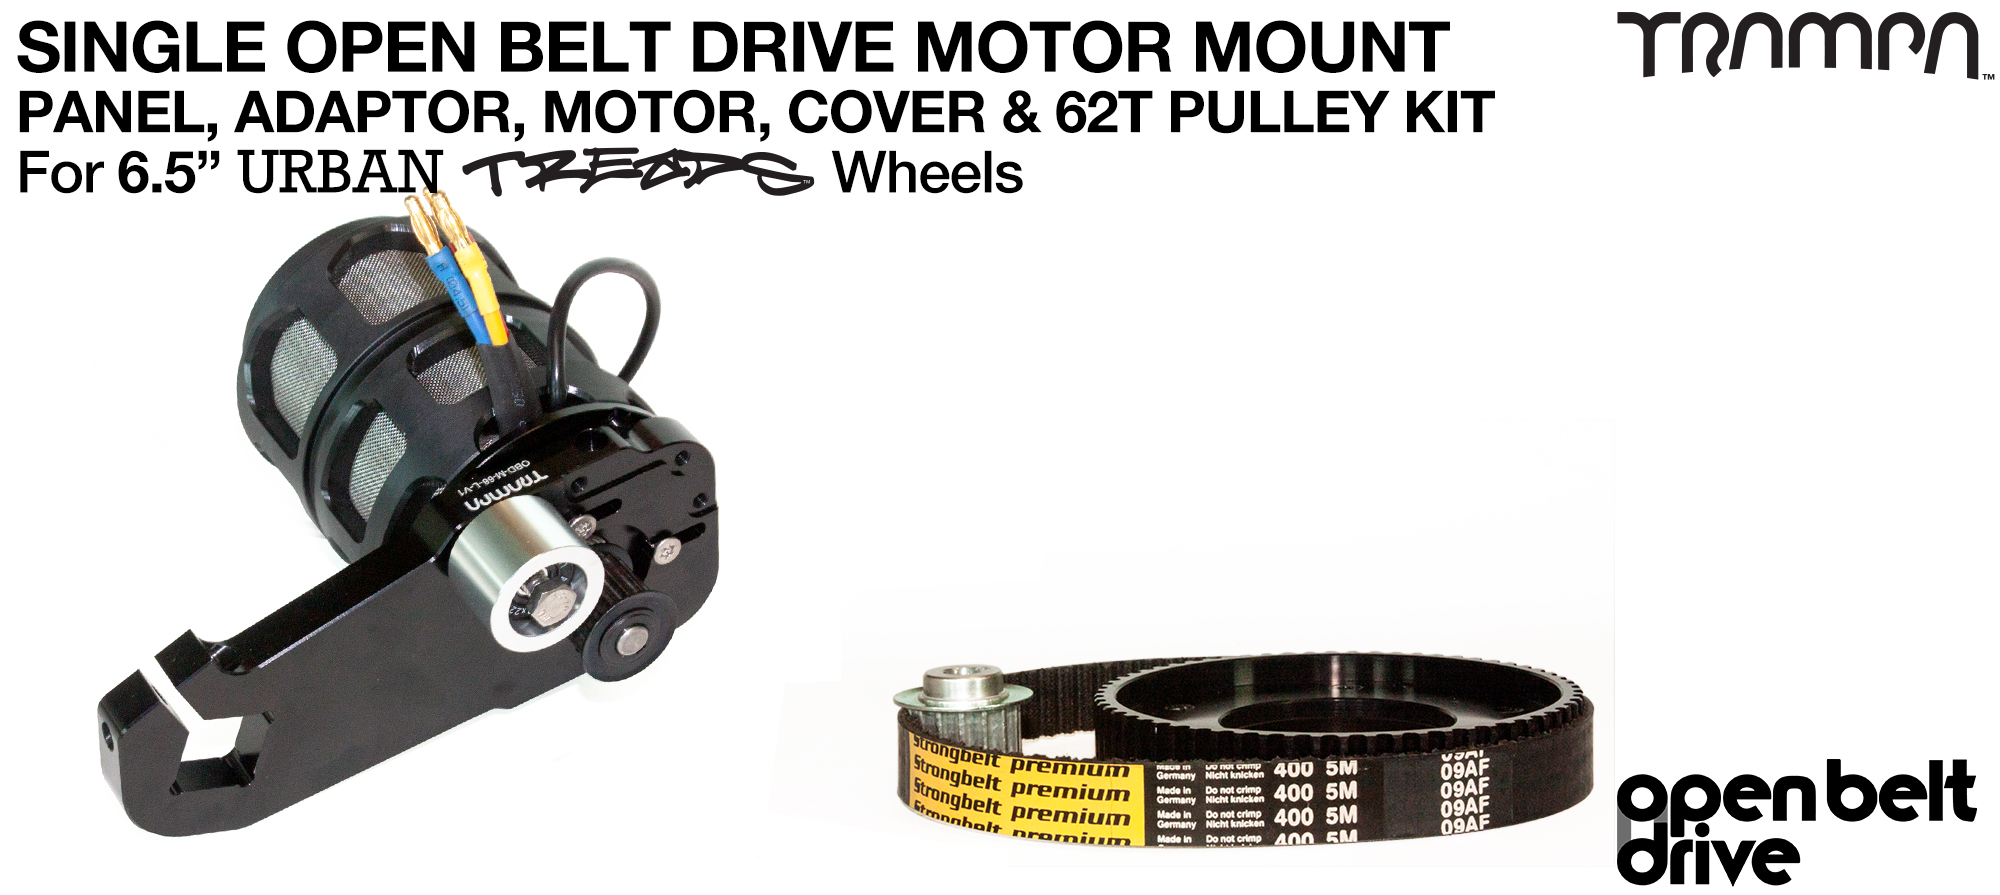 66T OBD Motor Mount with 62Tooth Pulley kit, Motor & Filters  - SINGLE